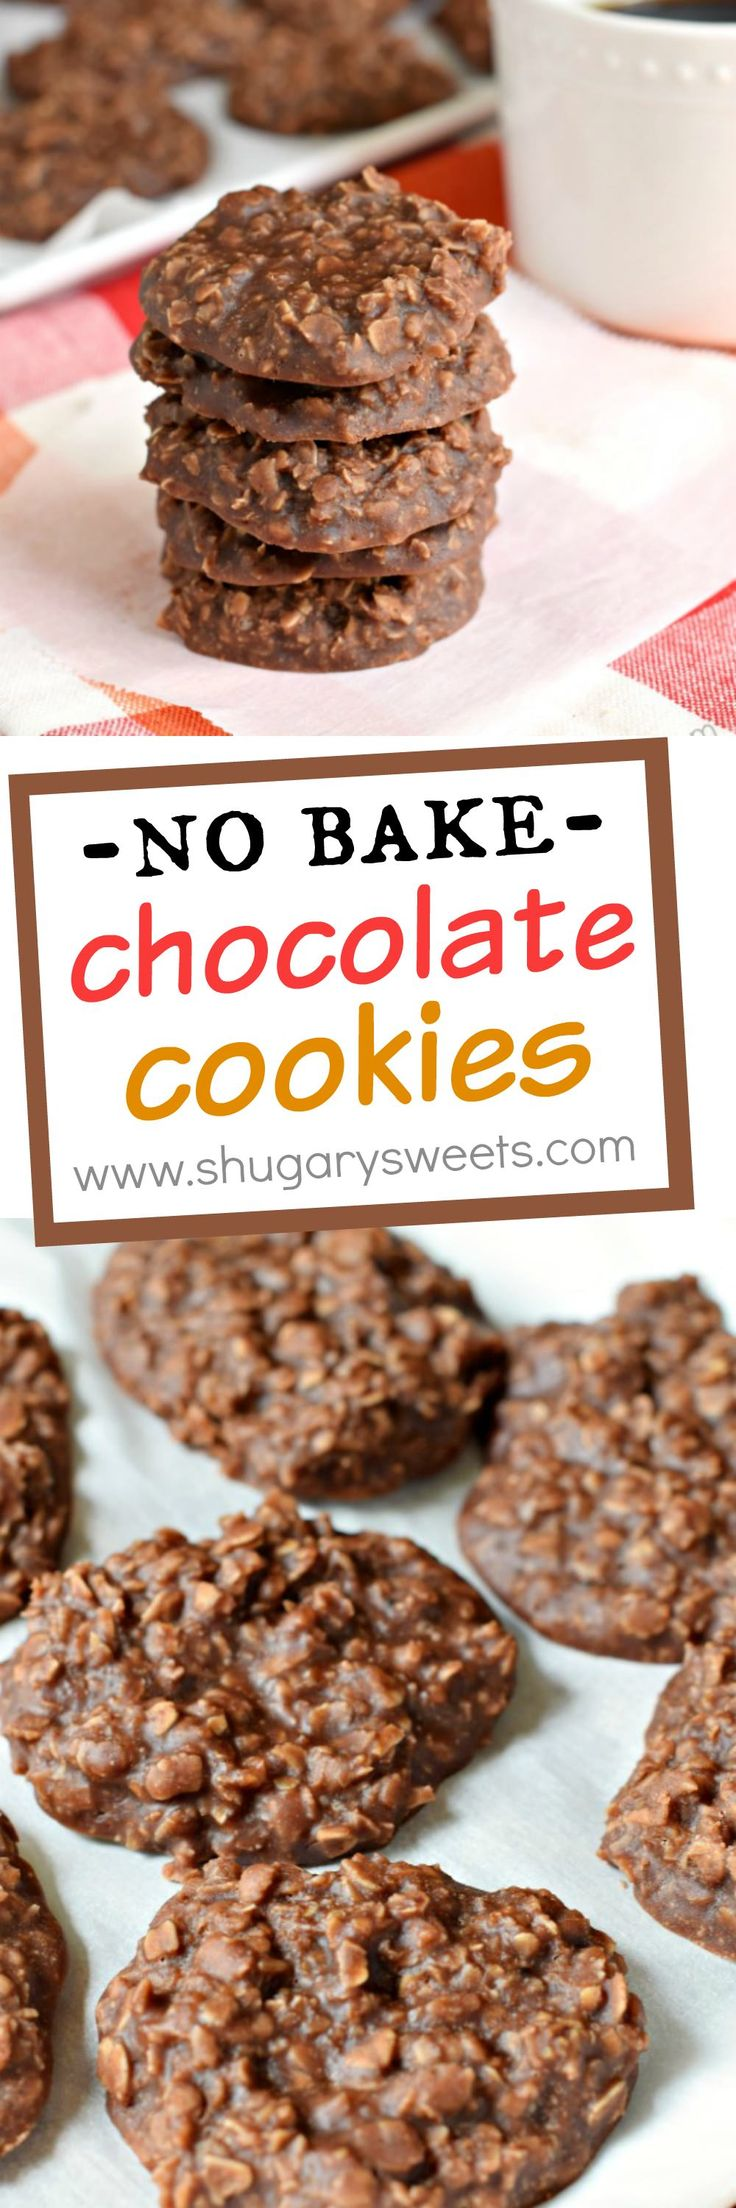 recipe for No Bake Chocolate Cookies! The peanut butter with chocolate ...